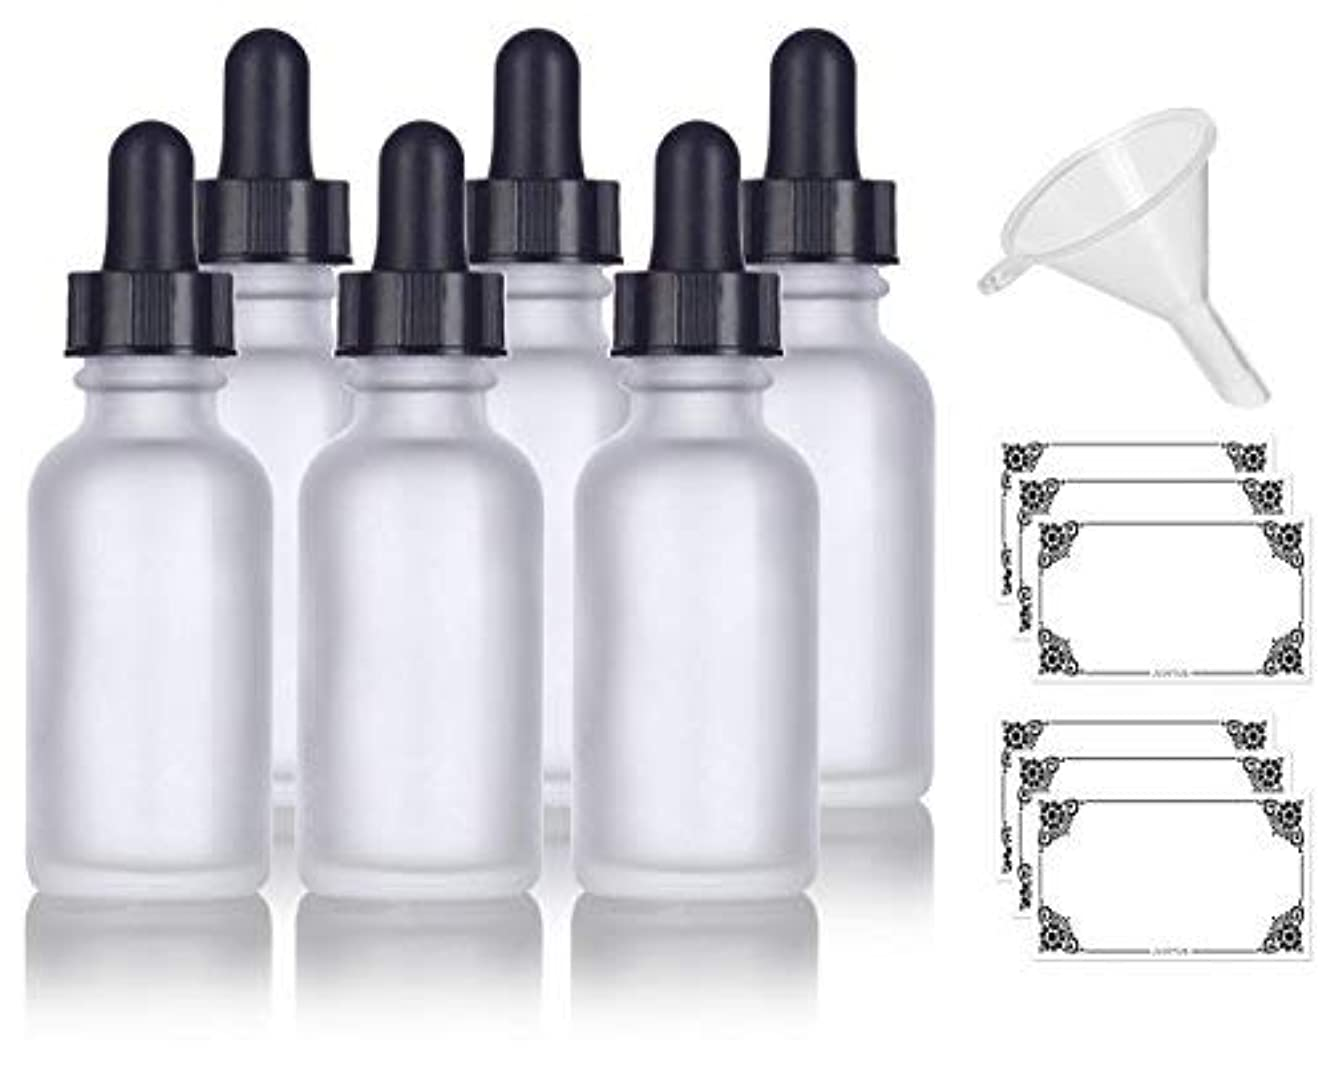 アフリカ賞賛謙虚な1 oz Frosted Clear Glass Boston Round Dropper Bottle (6 pack) + Funnel and Labels for cosmetics, serums, essential oils, aromatherapy, food grade, bpa free [並行輸入品]